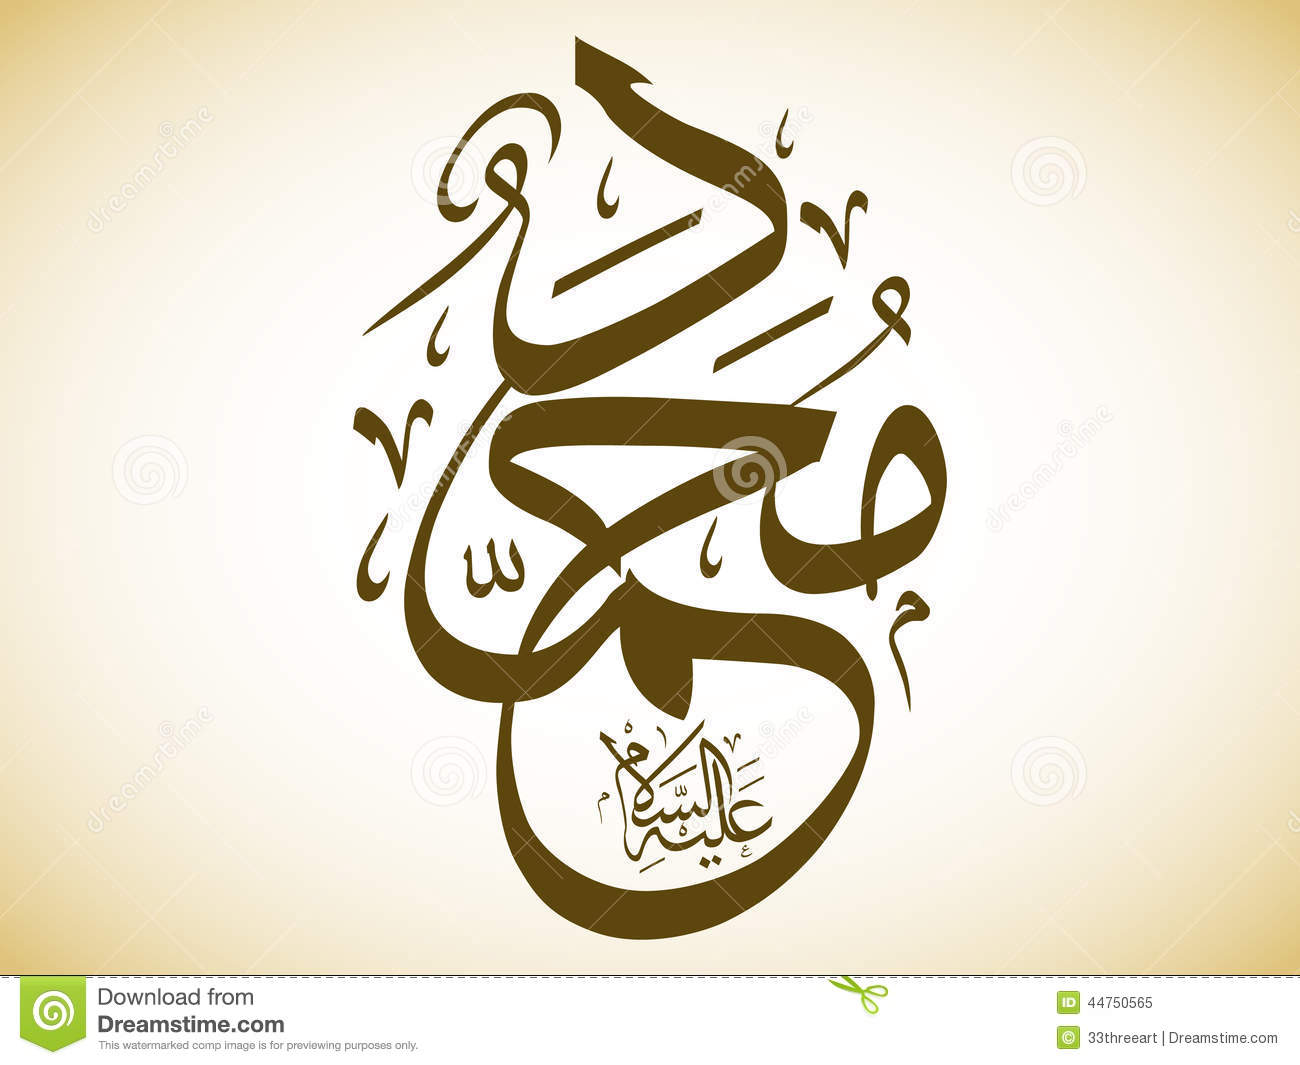 Muhammad the prophet stock vector image 44750565 Why is calligraphy important to islamic art